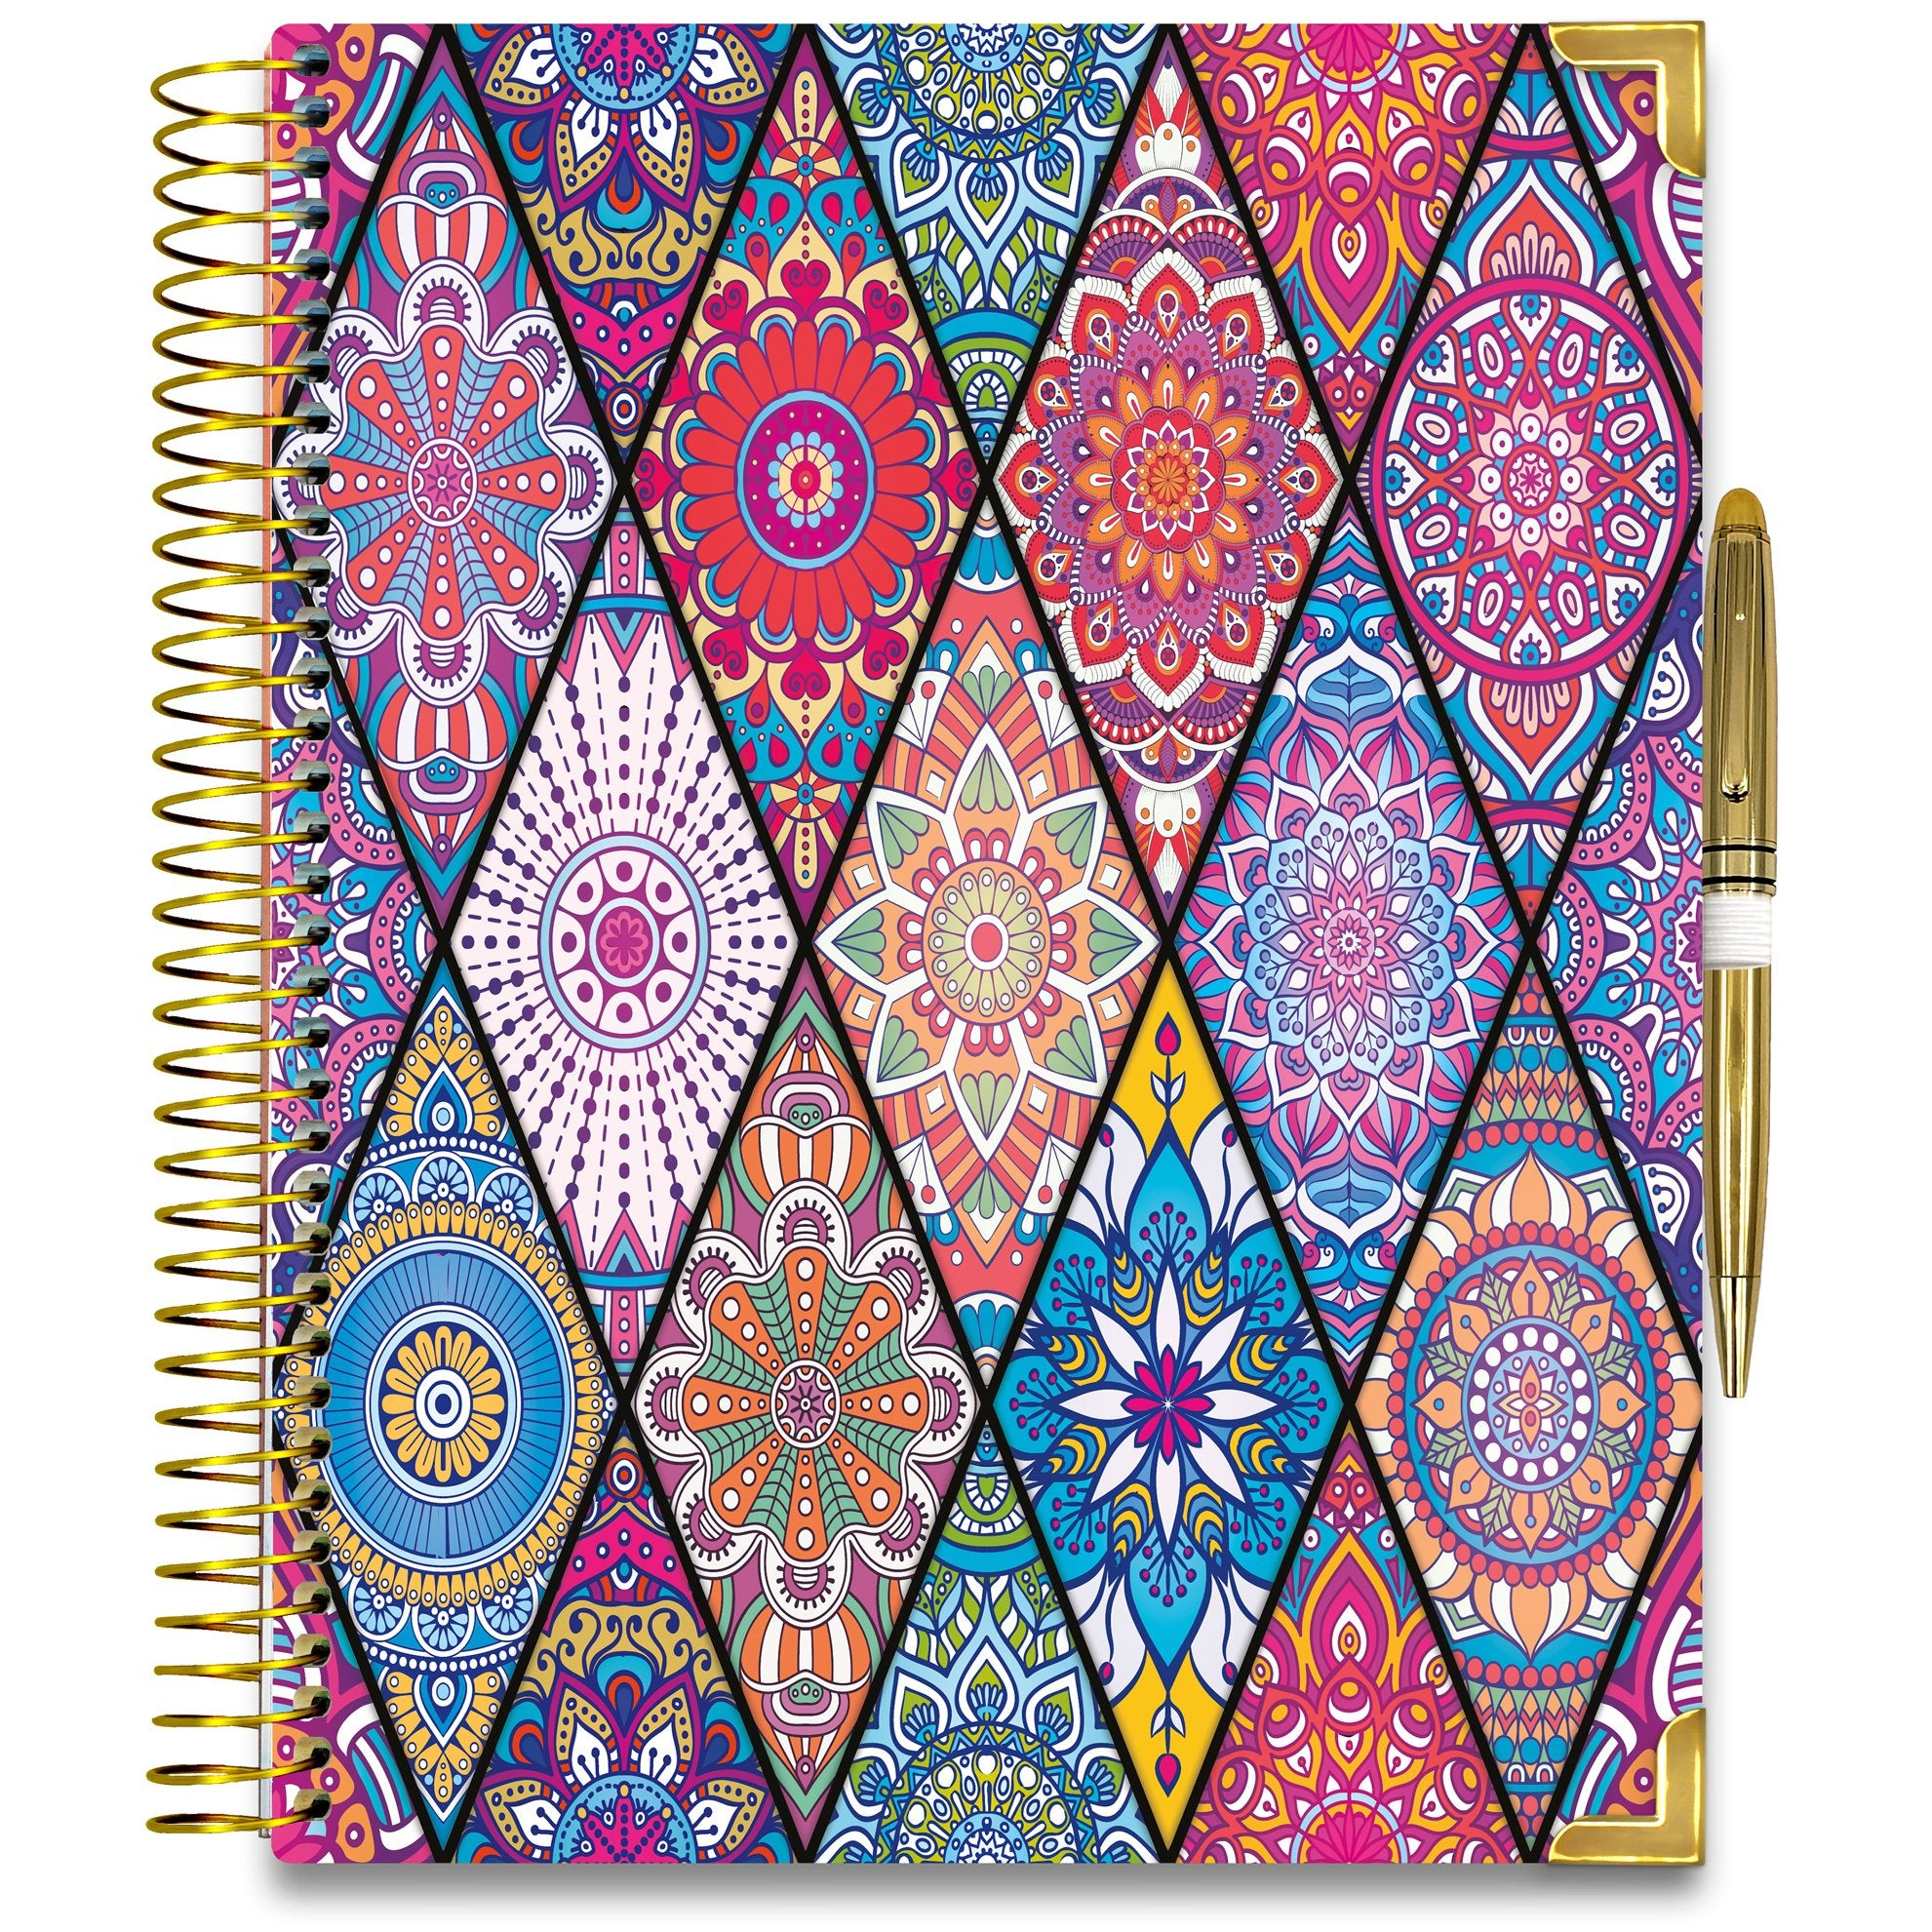 NEW: April 2020-2021 Planner - Gold Edition - Bejeweled 2-Office Product-Tools4Wisdom